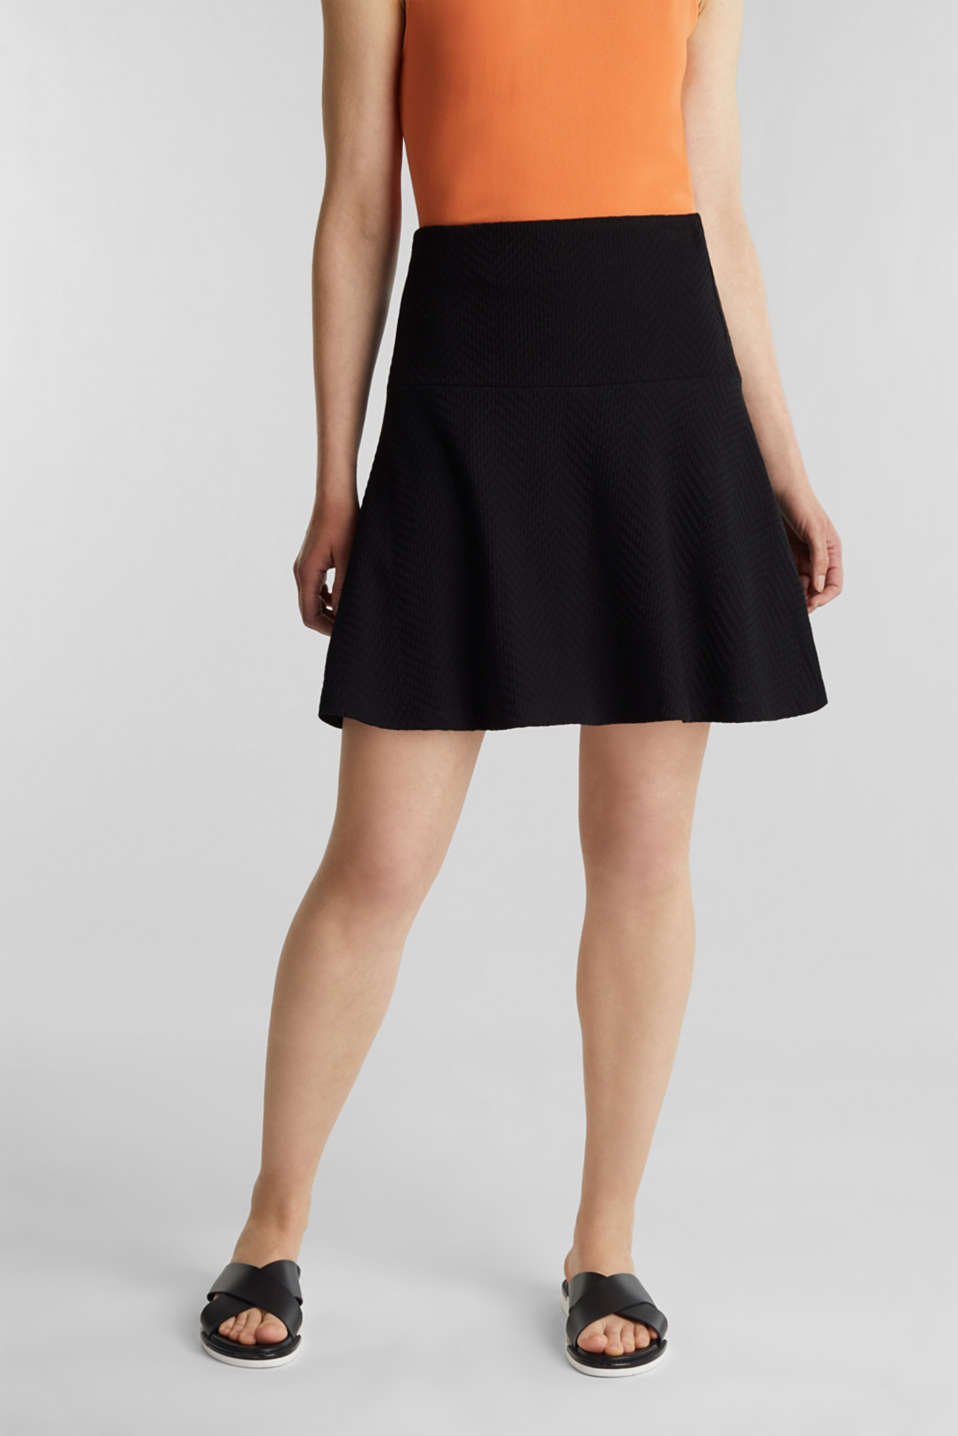 Textured jersey skirt, 100% cotton, BLACK, detail image number 5